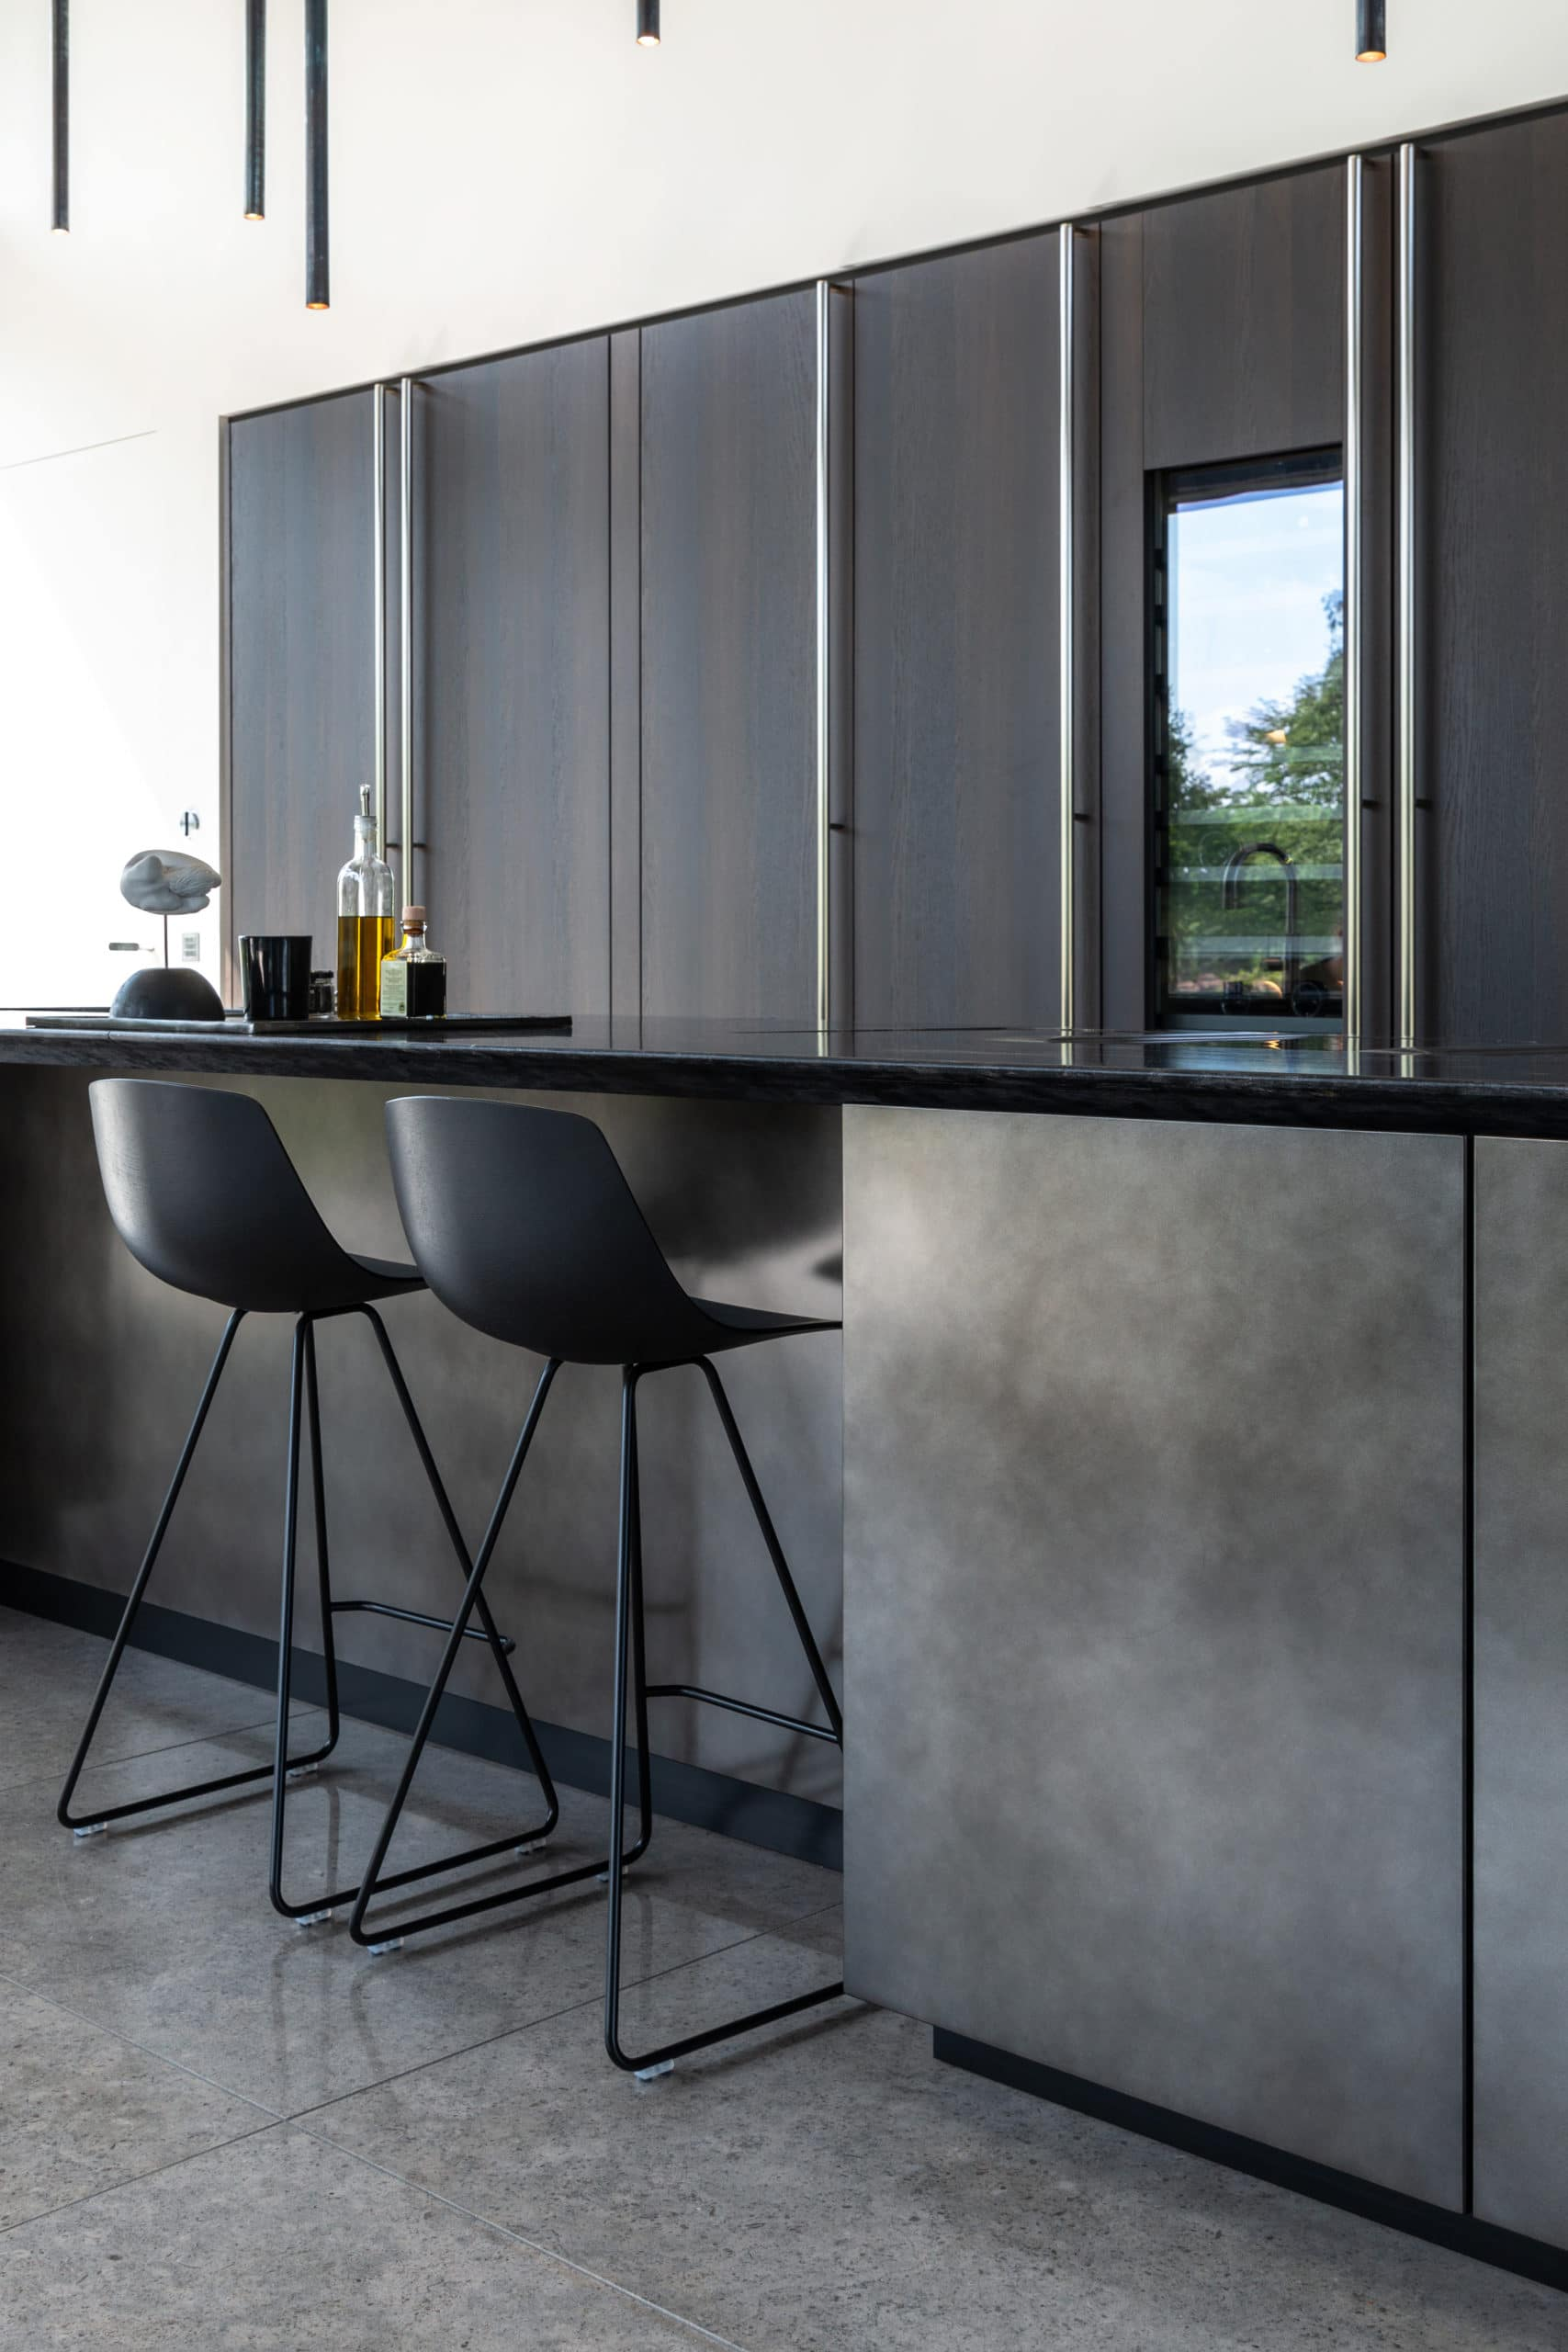 Boffi Kitchen with stools